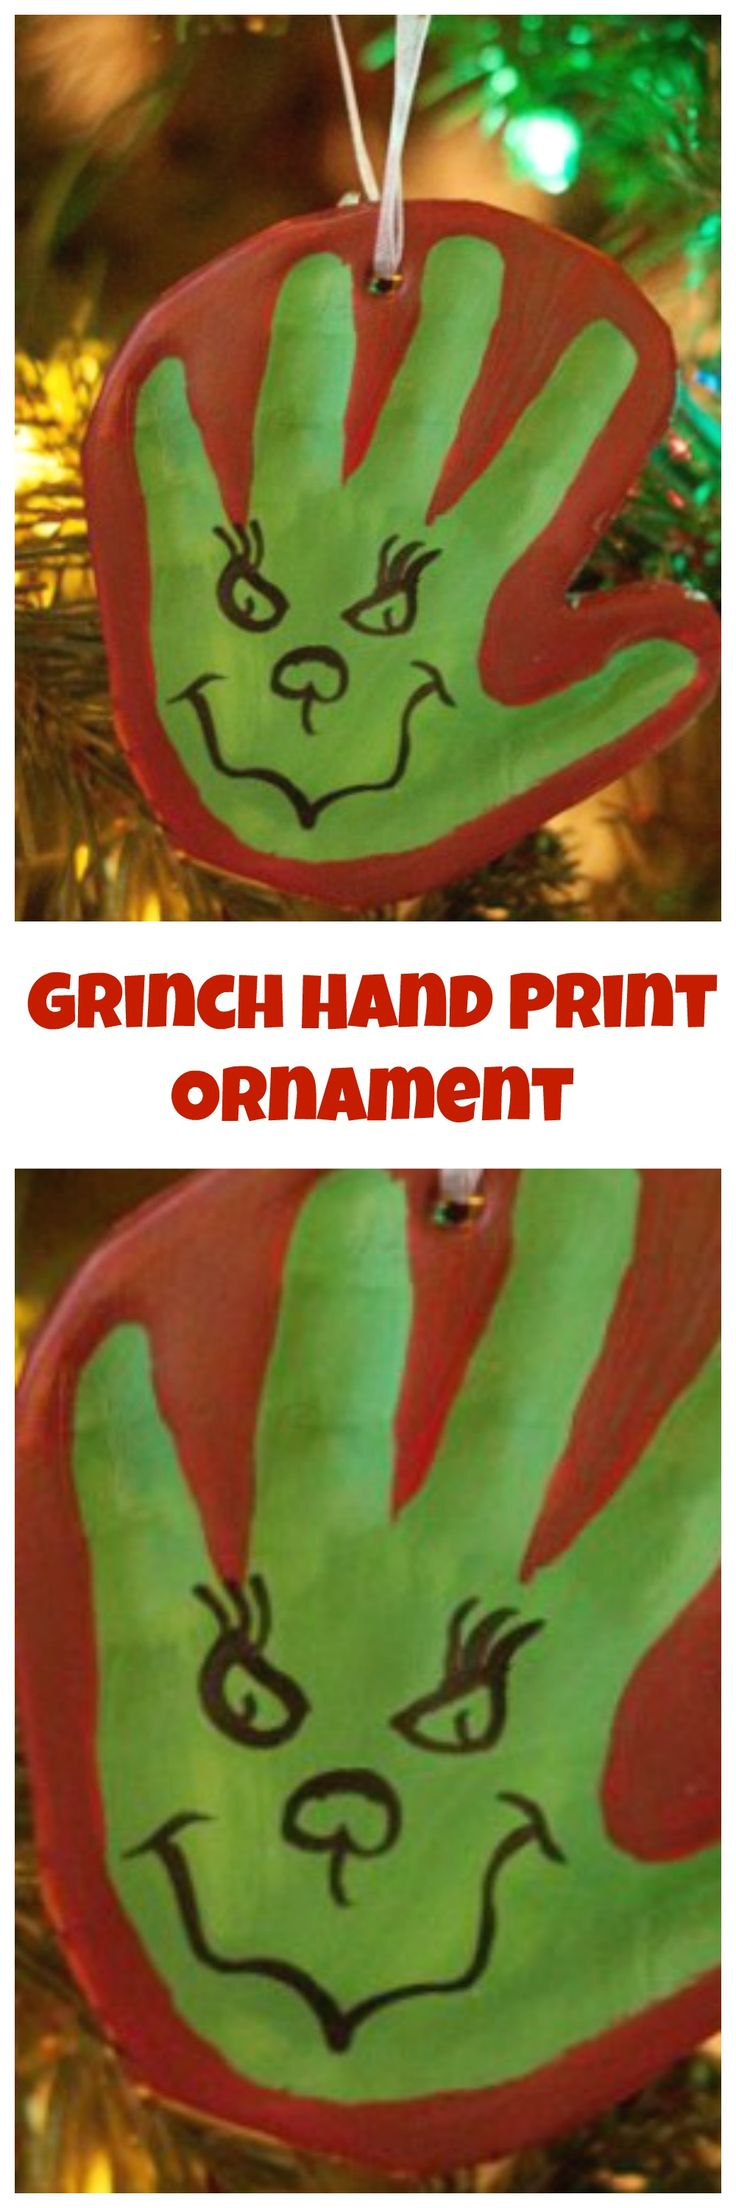 The Grinch Hand Print DIY Clay Ornament . The Grinch Hand Print Ornament DIY Christmas Memory ornament